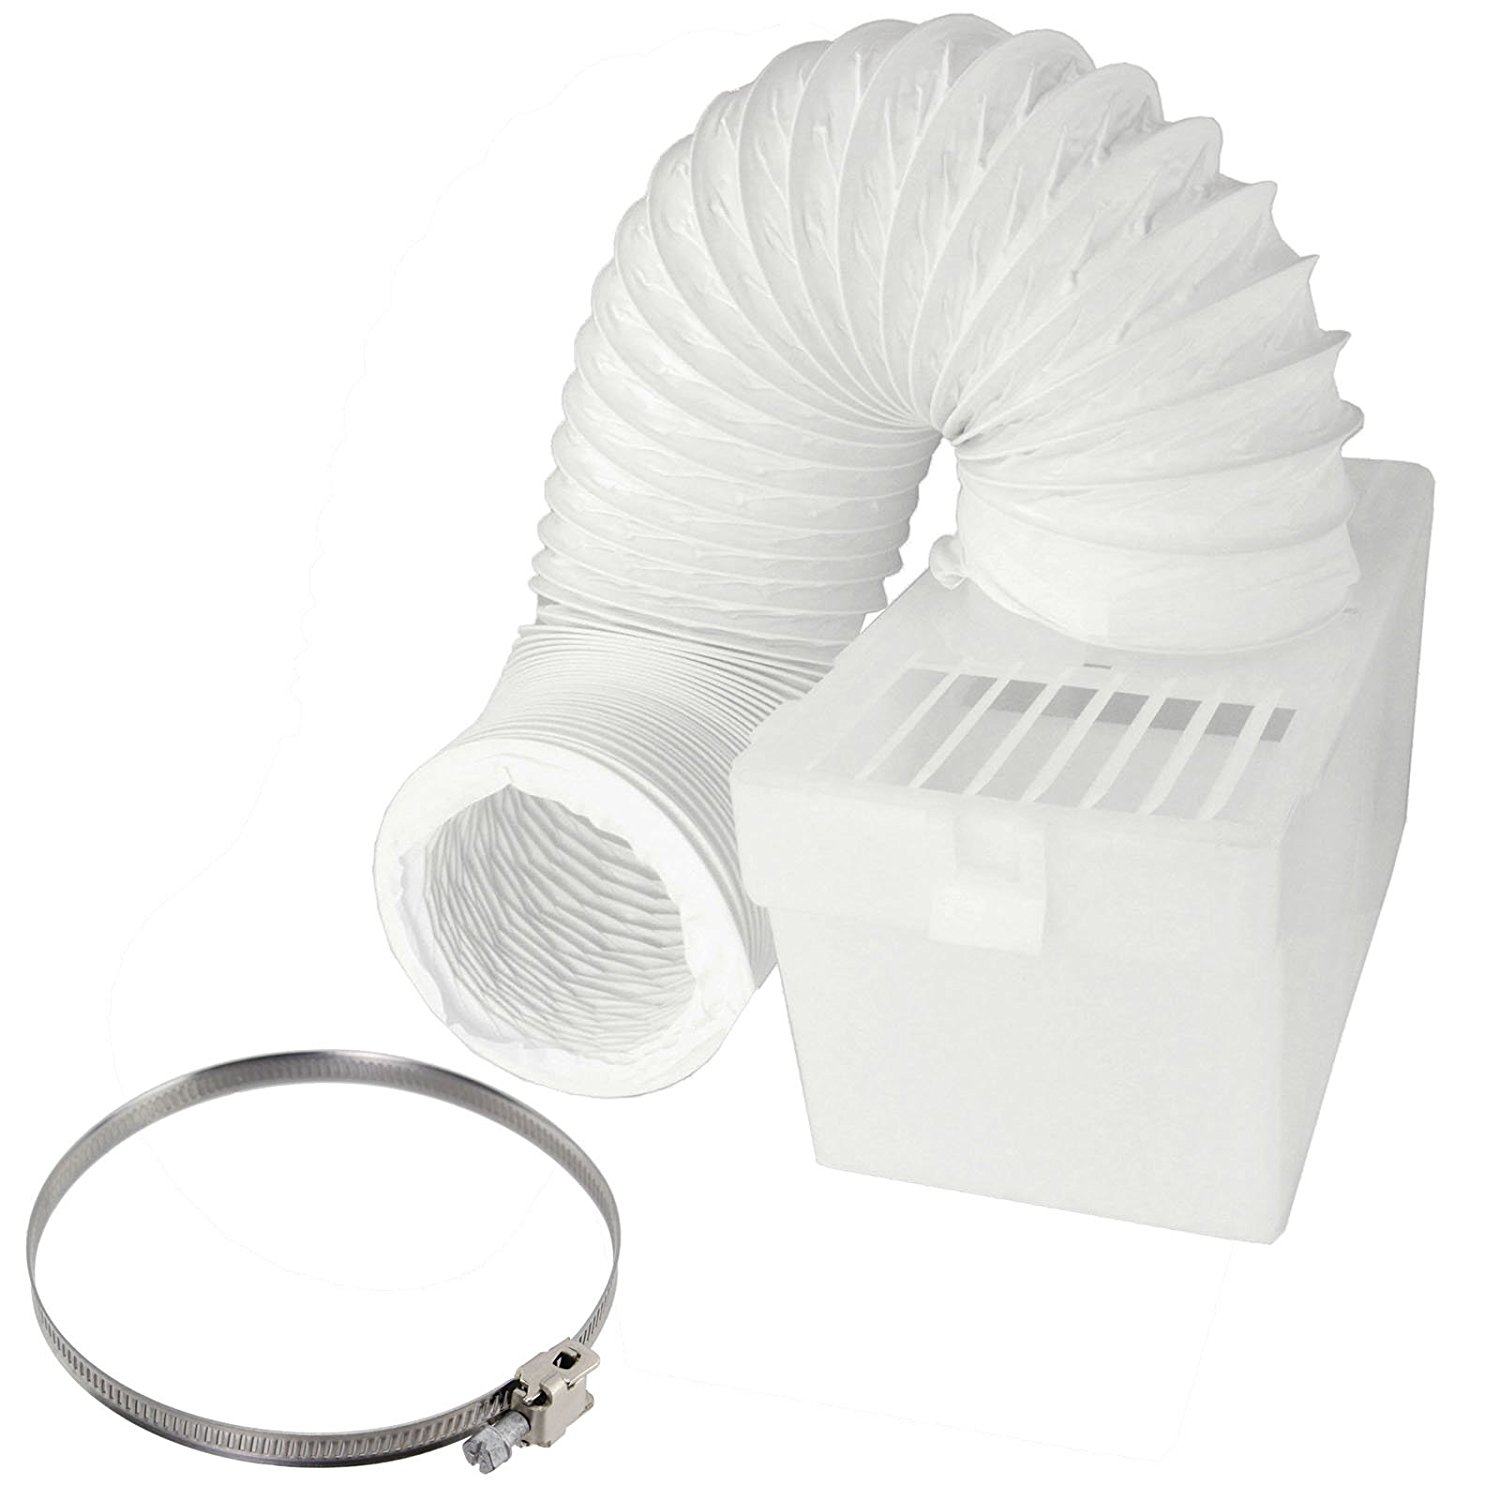 Recessed Hookup Venting Kit For Flex Hose Connector Improve Clothes Dryer Appliance Efficiency Prevent Kinked Hose /& Fire Hazards Inset Dryer Exhaust Box Is Easy to Retrofit In Existing Home /& New Construction. EZ-Flow Dryer Vent Box